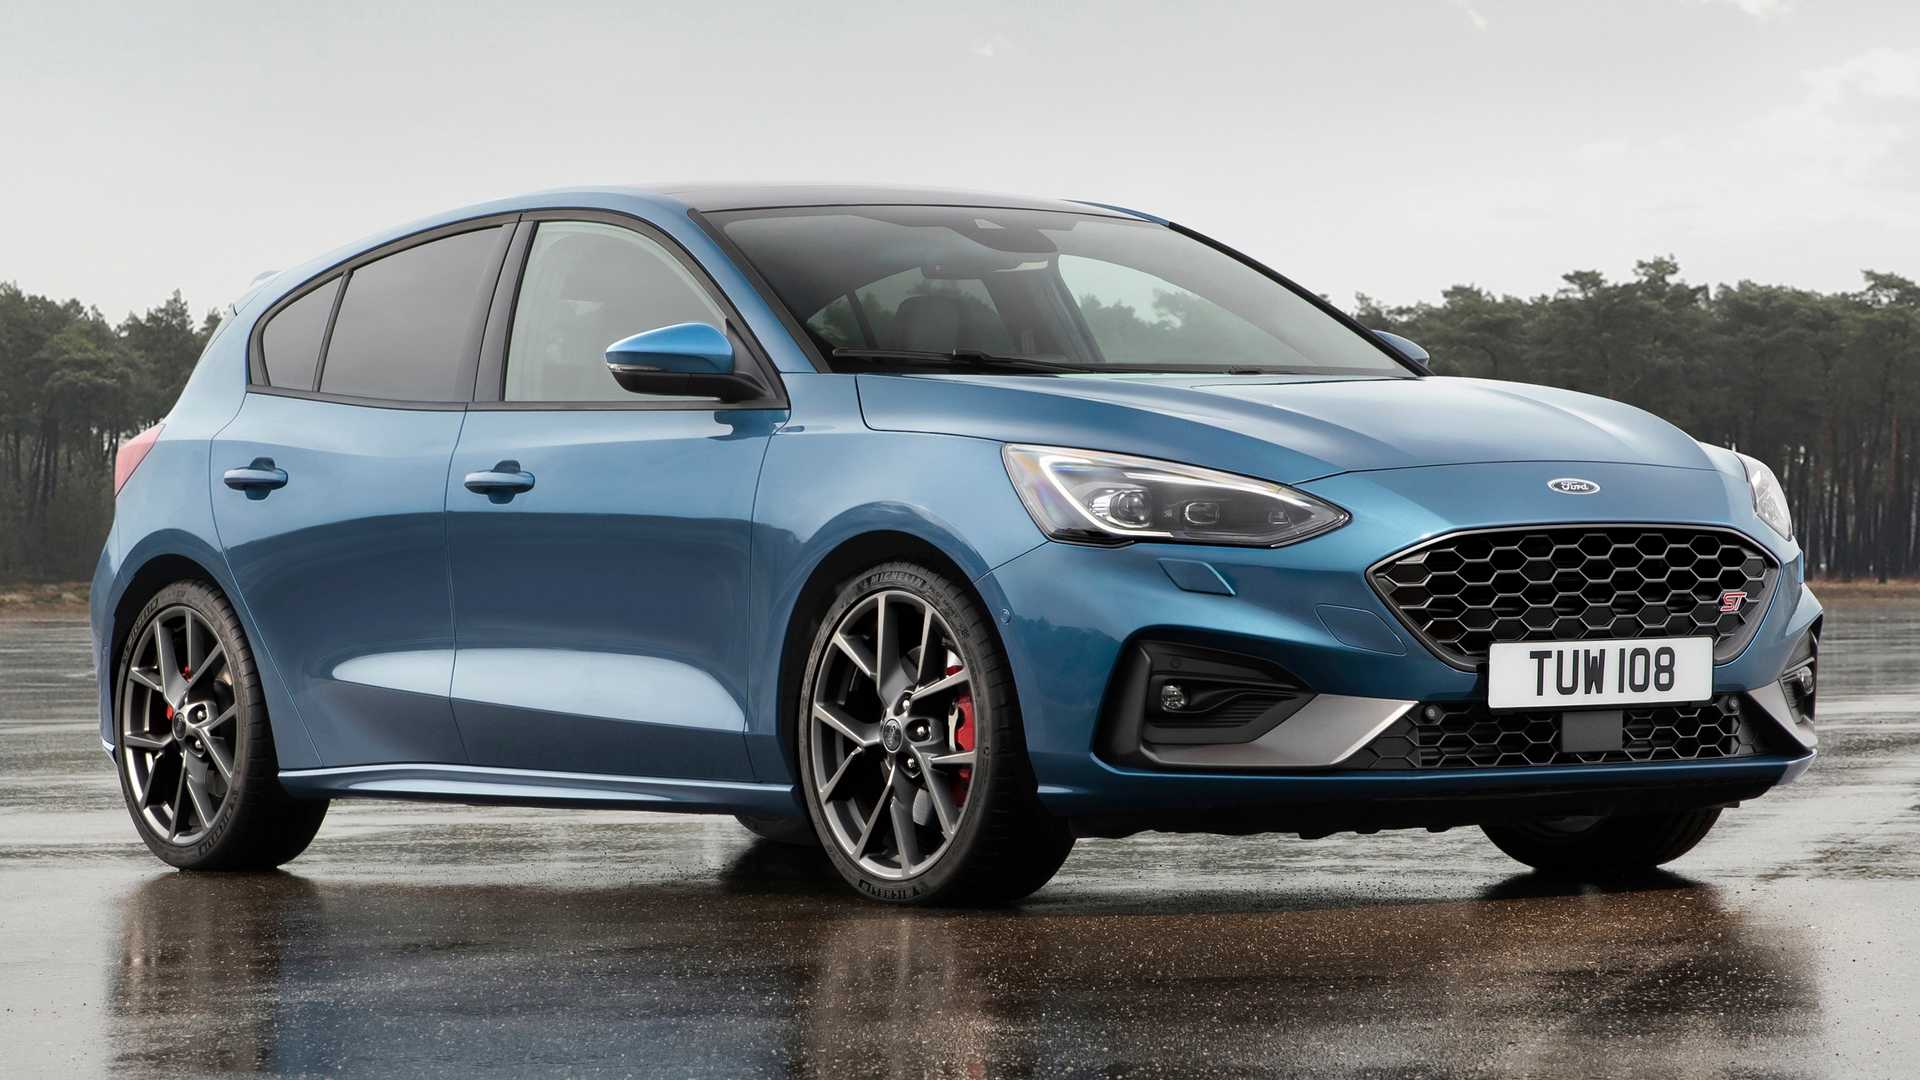 28 New 2019 Ford Focus Picture